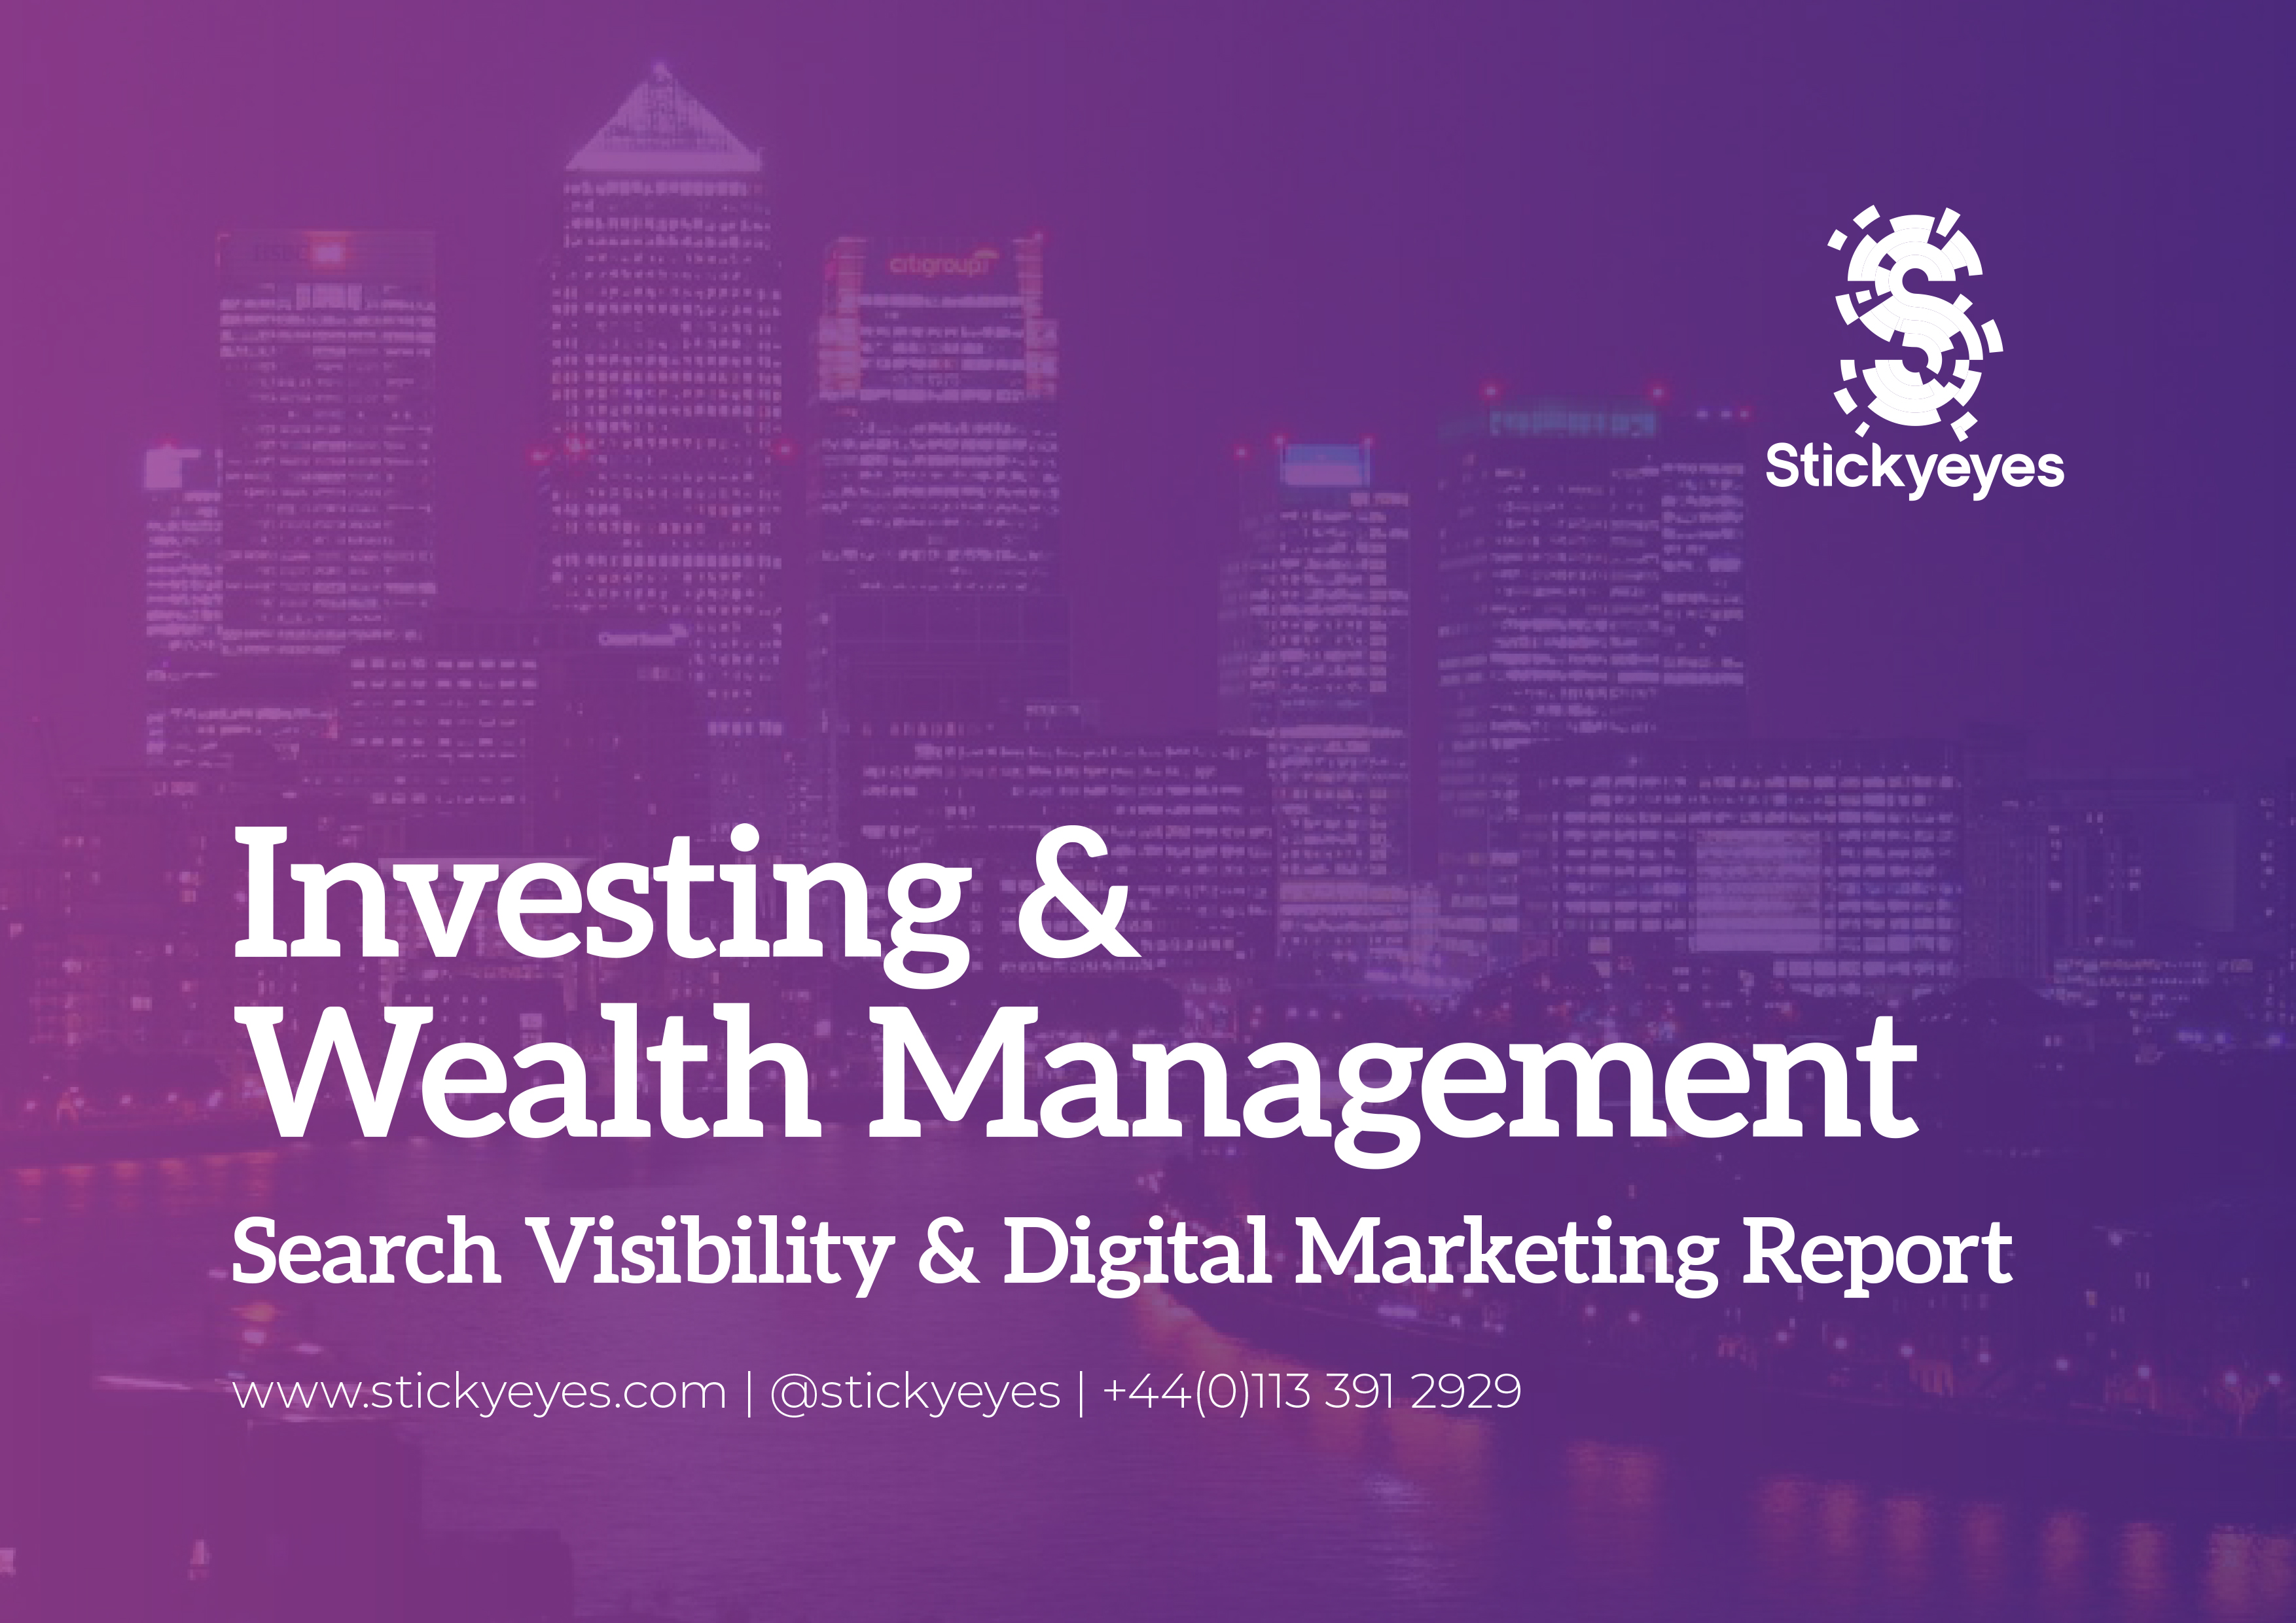 Investing and Wealth Management Report_Draft1-1